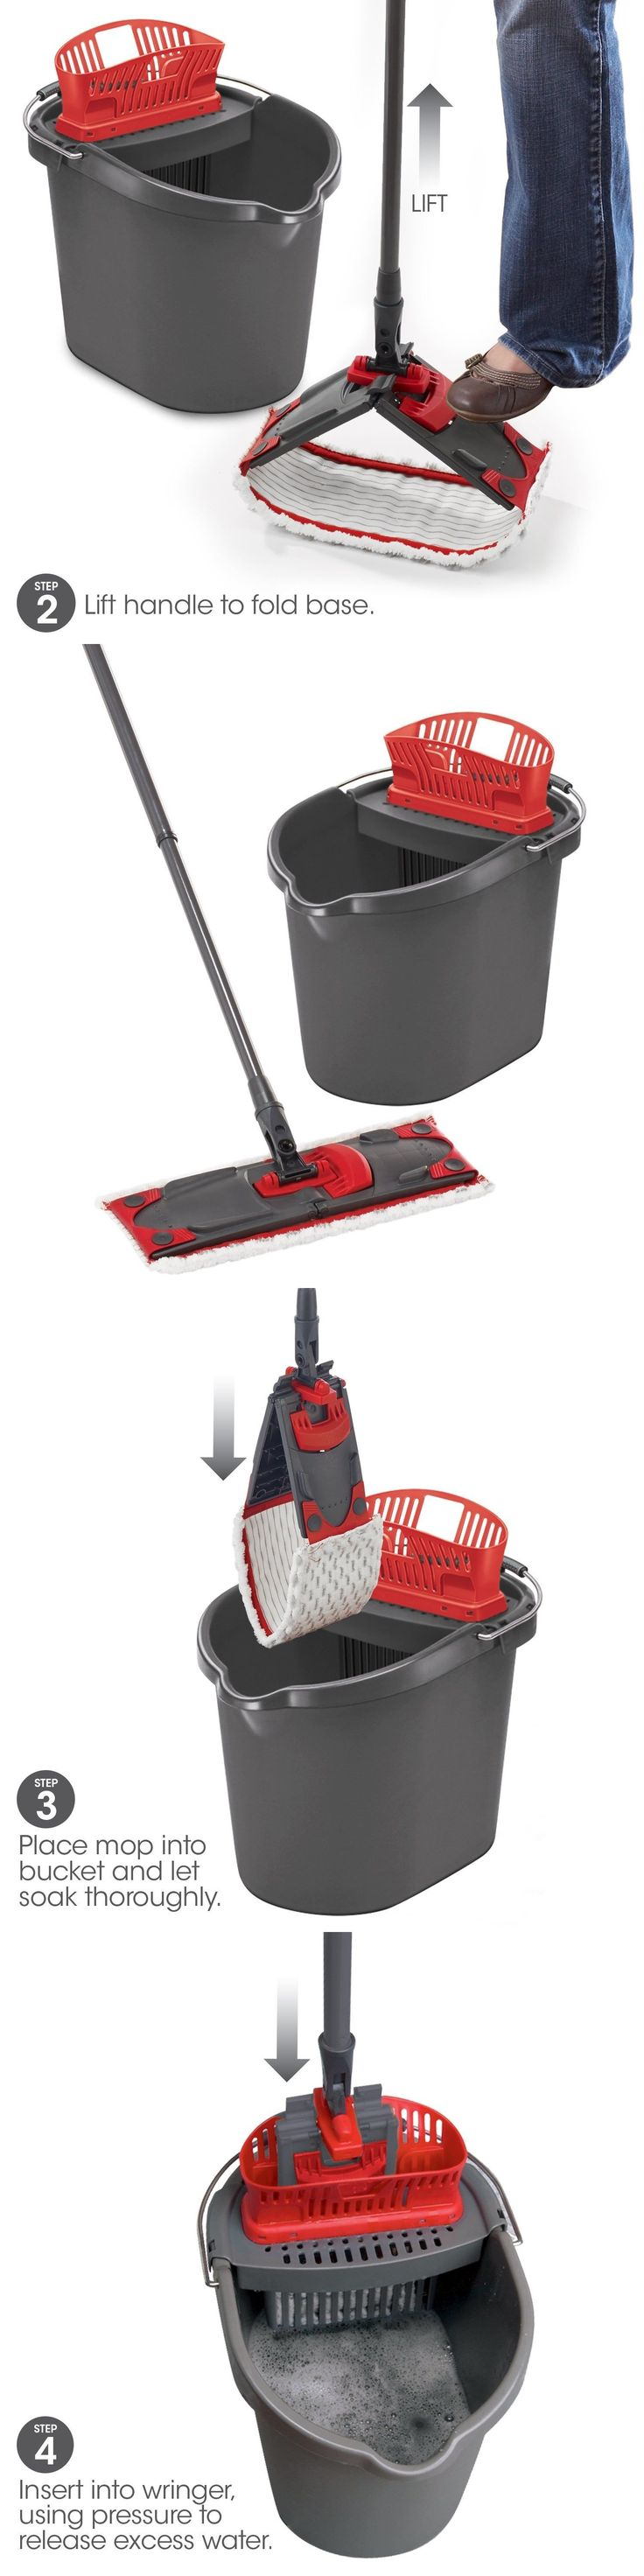 Mops and Brooms 20607: Flat Mop Microfiber Bucket Floor Cloth Snaps Cleaning Under Cabinets Dirt Grime -> BUY IT NOW ONLY: $44.17 on eBay!